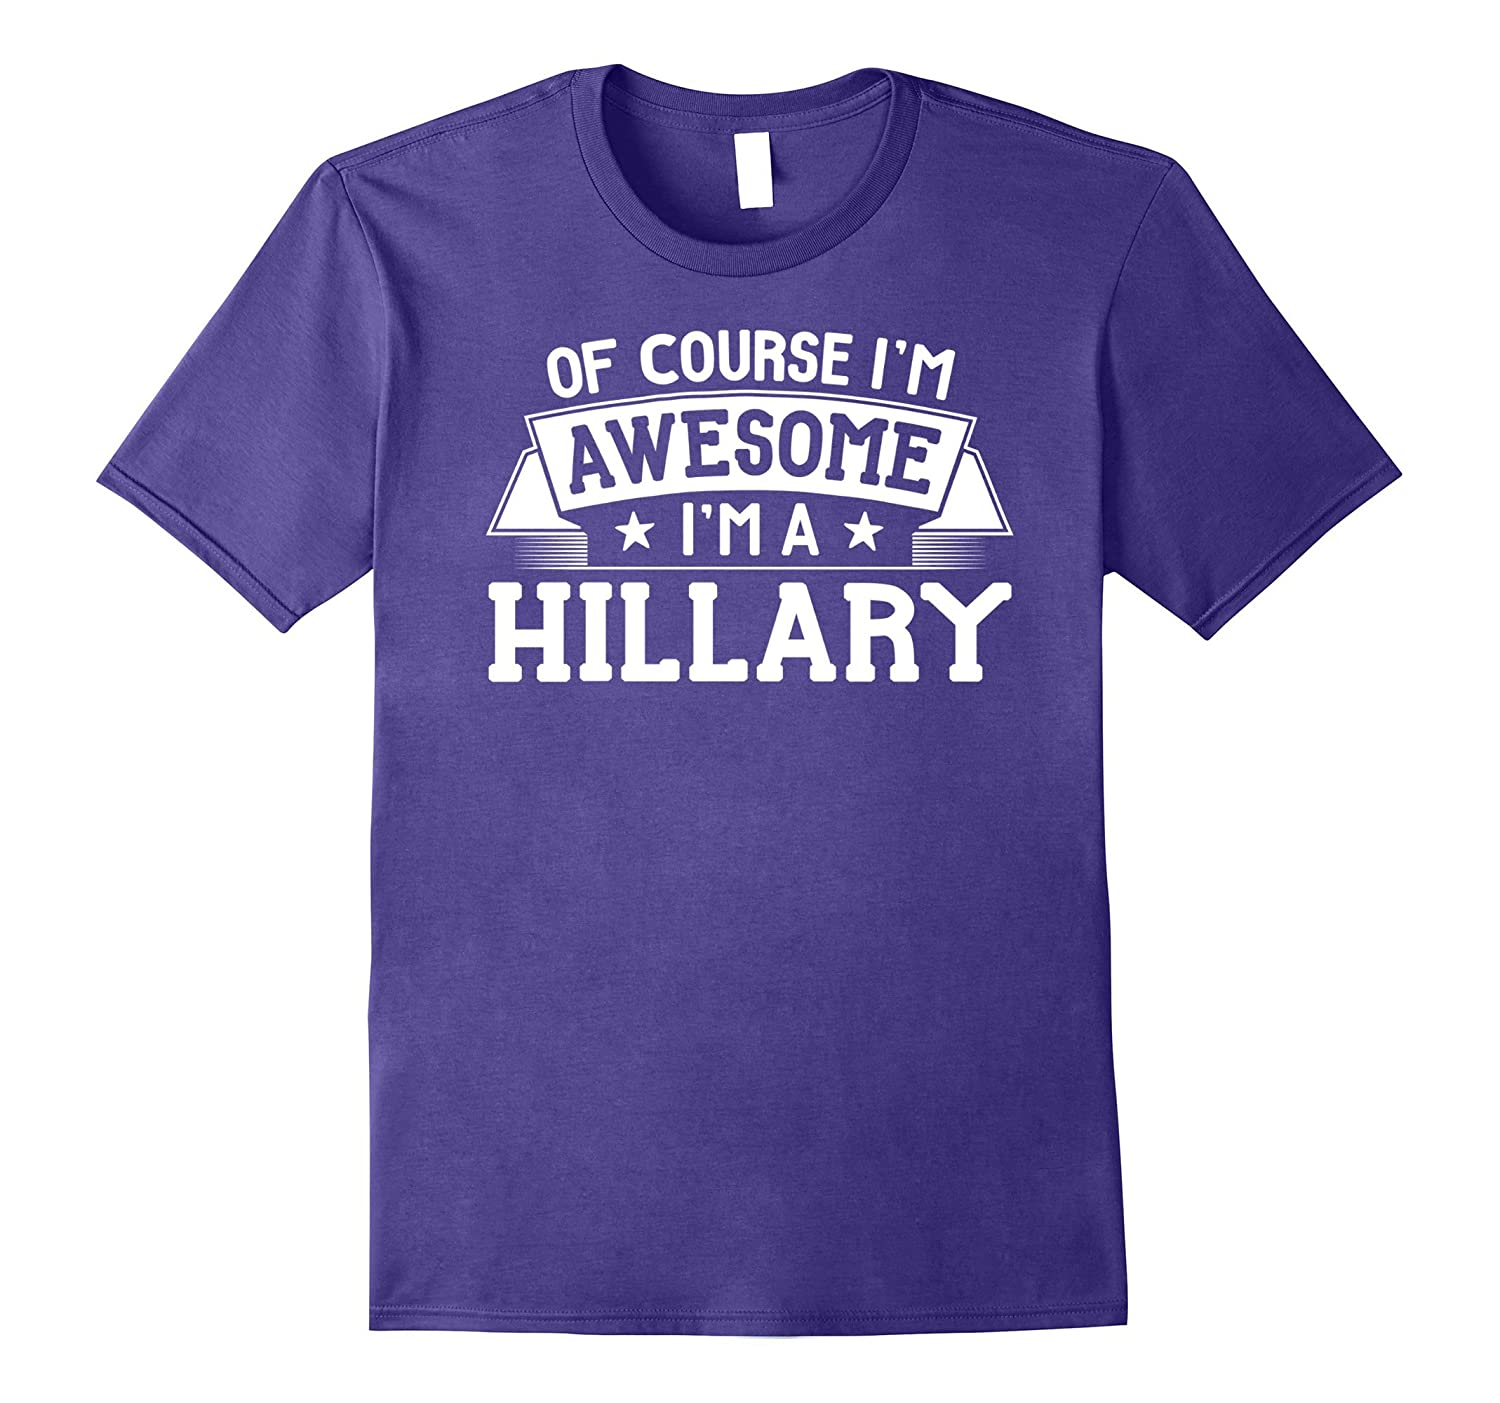 Hillary T-Shirt First or Last Name – Of Course I'm Awesome